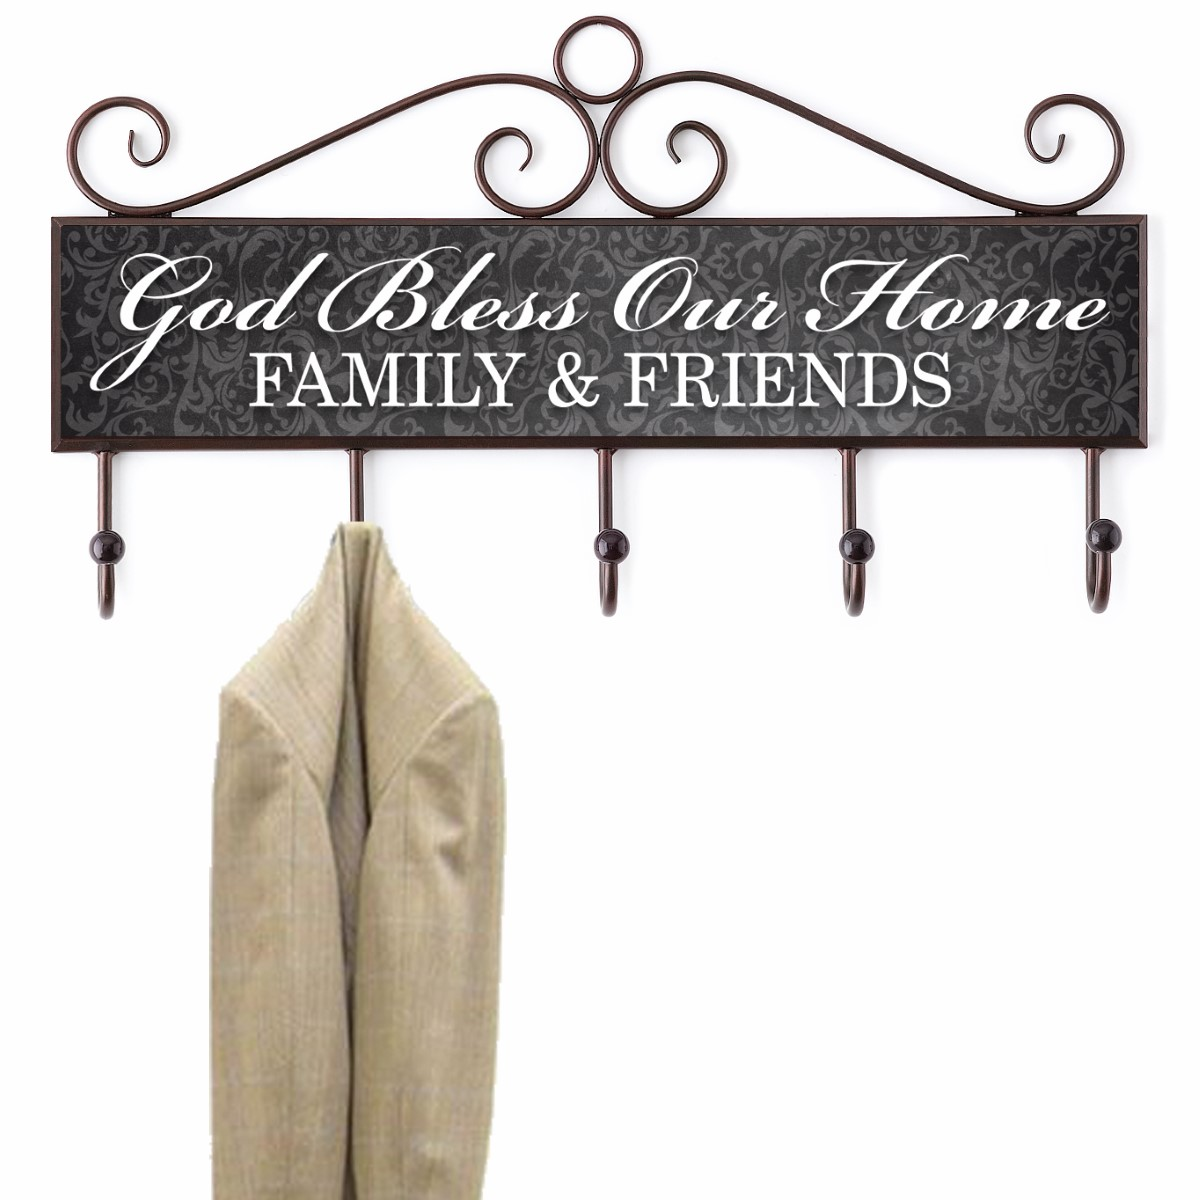 God Bless Our Home Plaque with Hooks